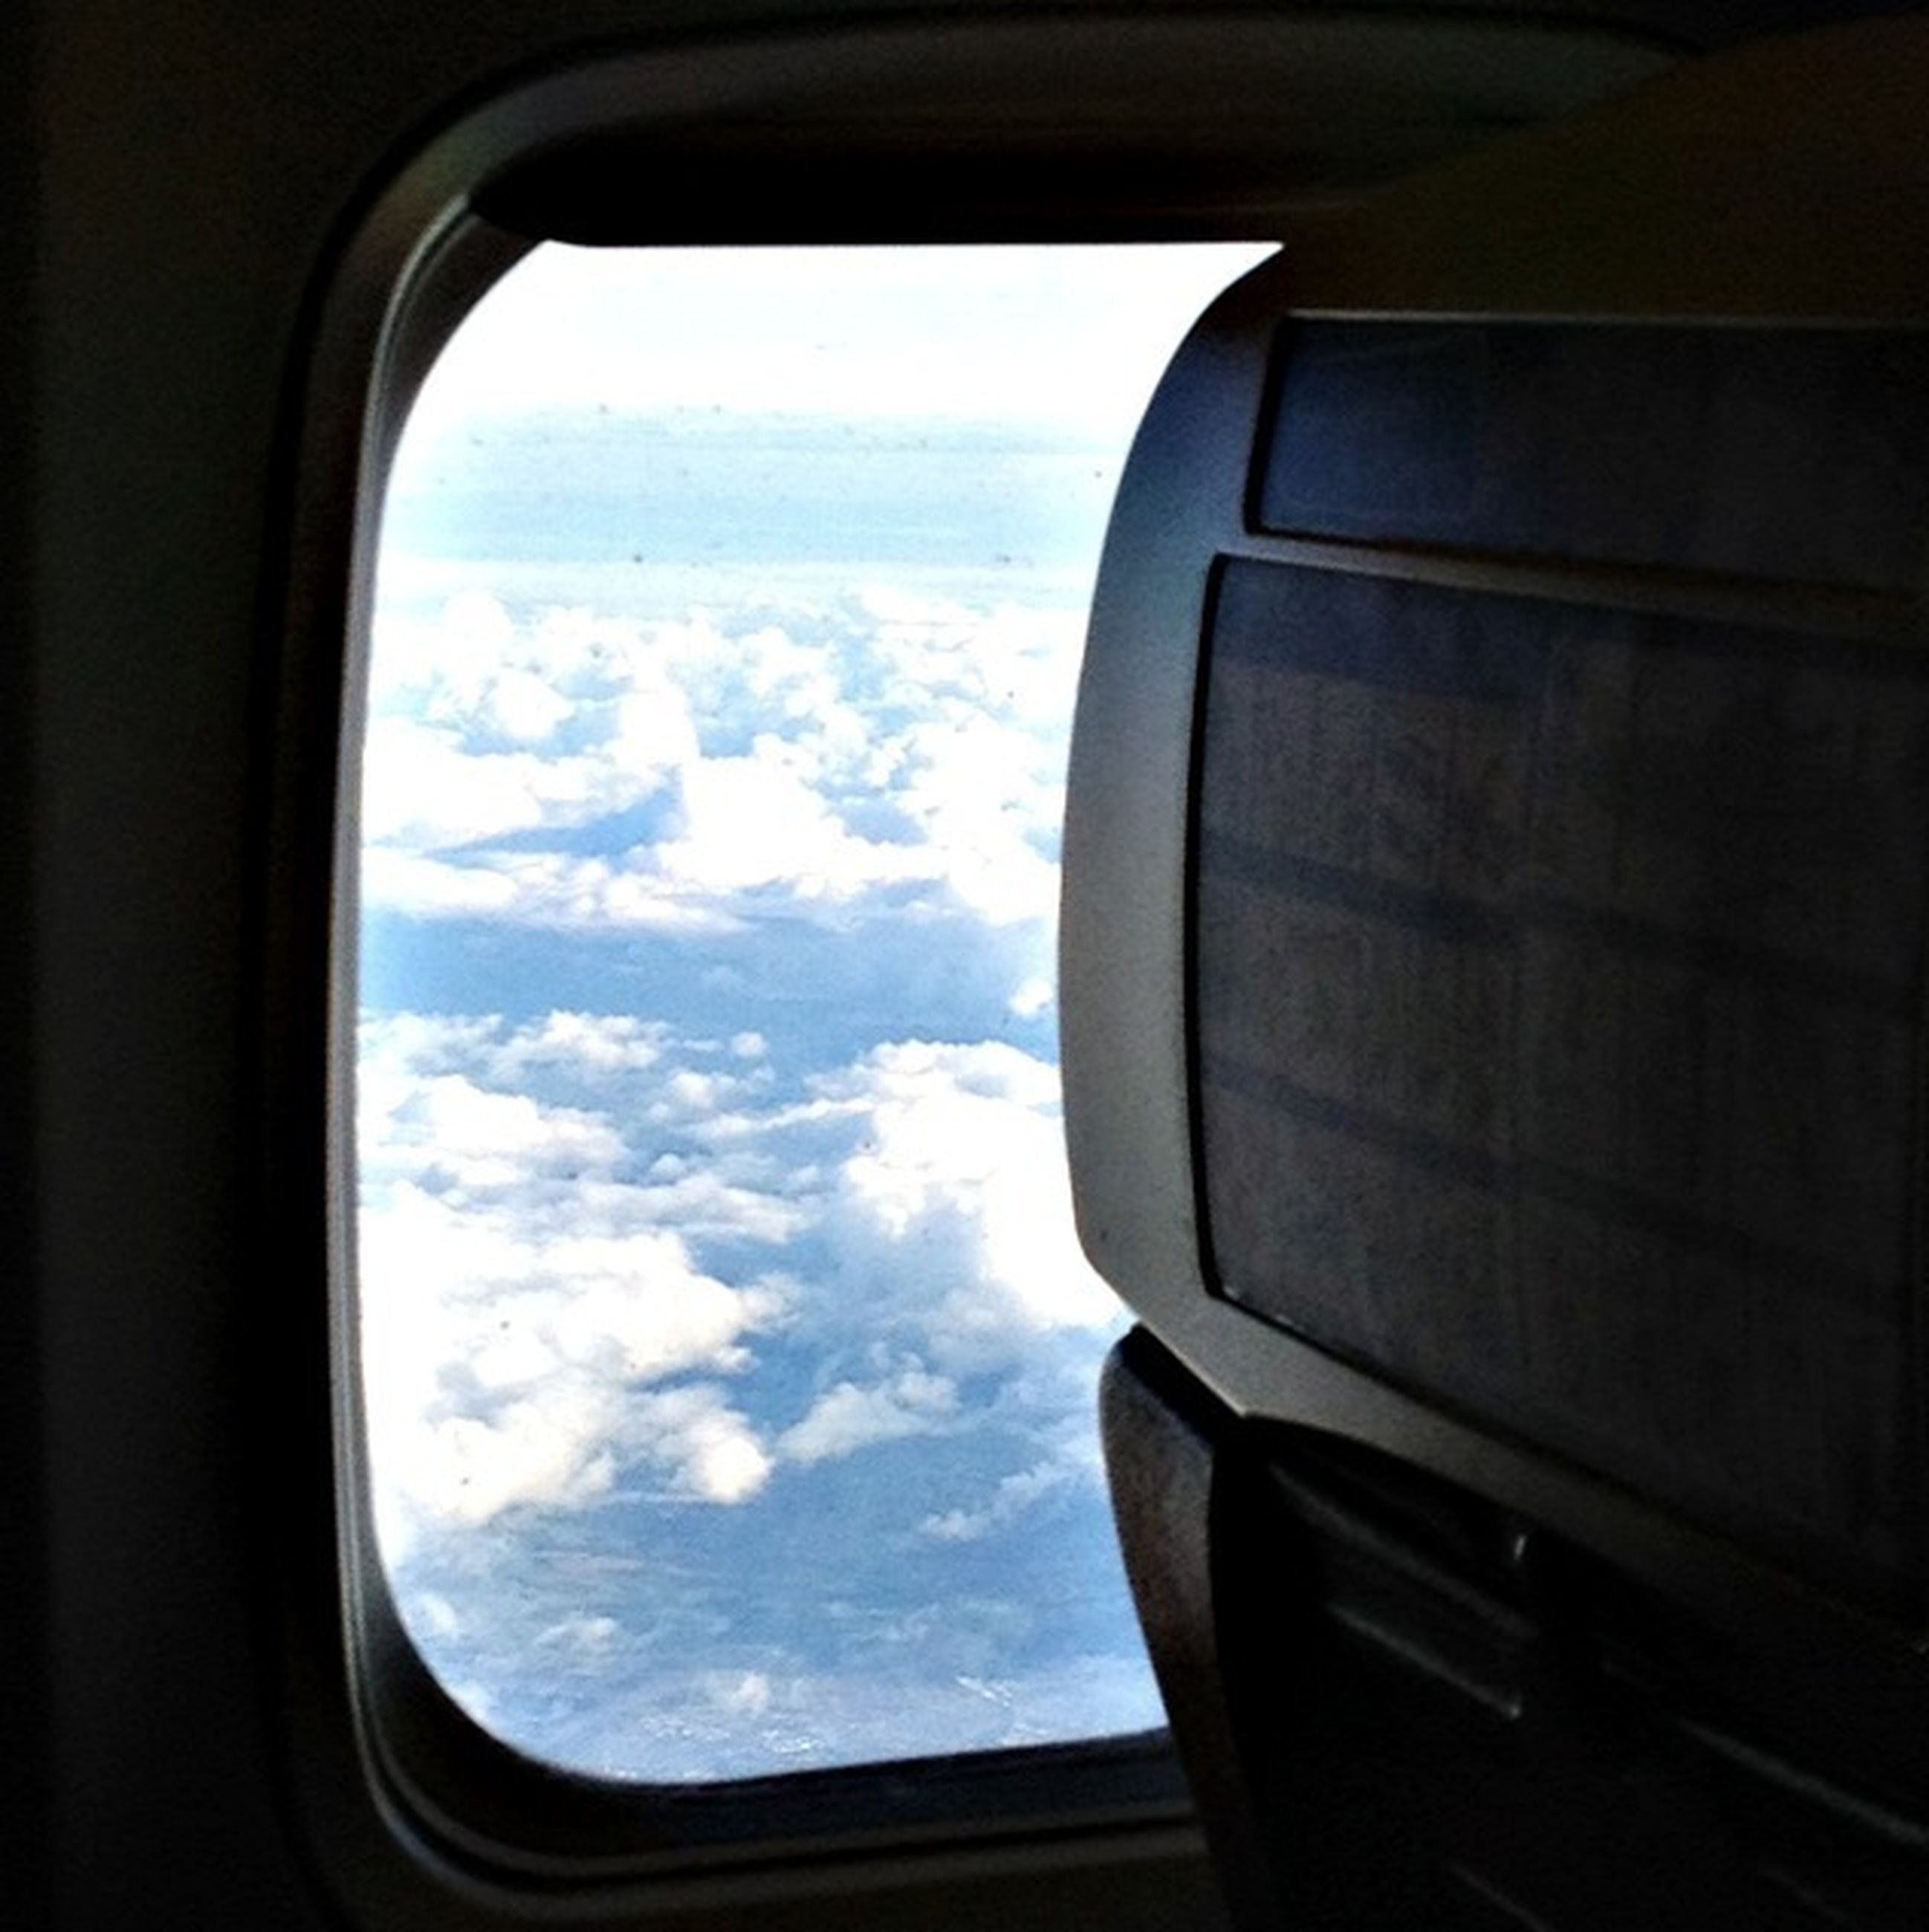 transportation, vehicle interior, mode of transport, window, airplane, sky, glass - material, transparent, car, cloud - sky, air vehicle, part of, travel, land vehicle, cropped, cloud, journey, public transportation, looking through window, indoors